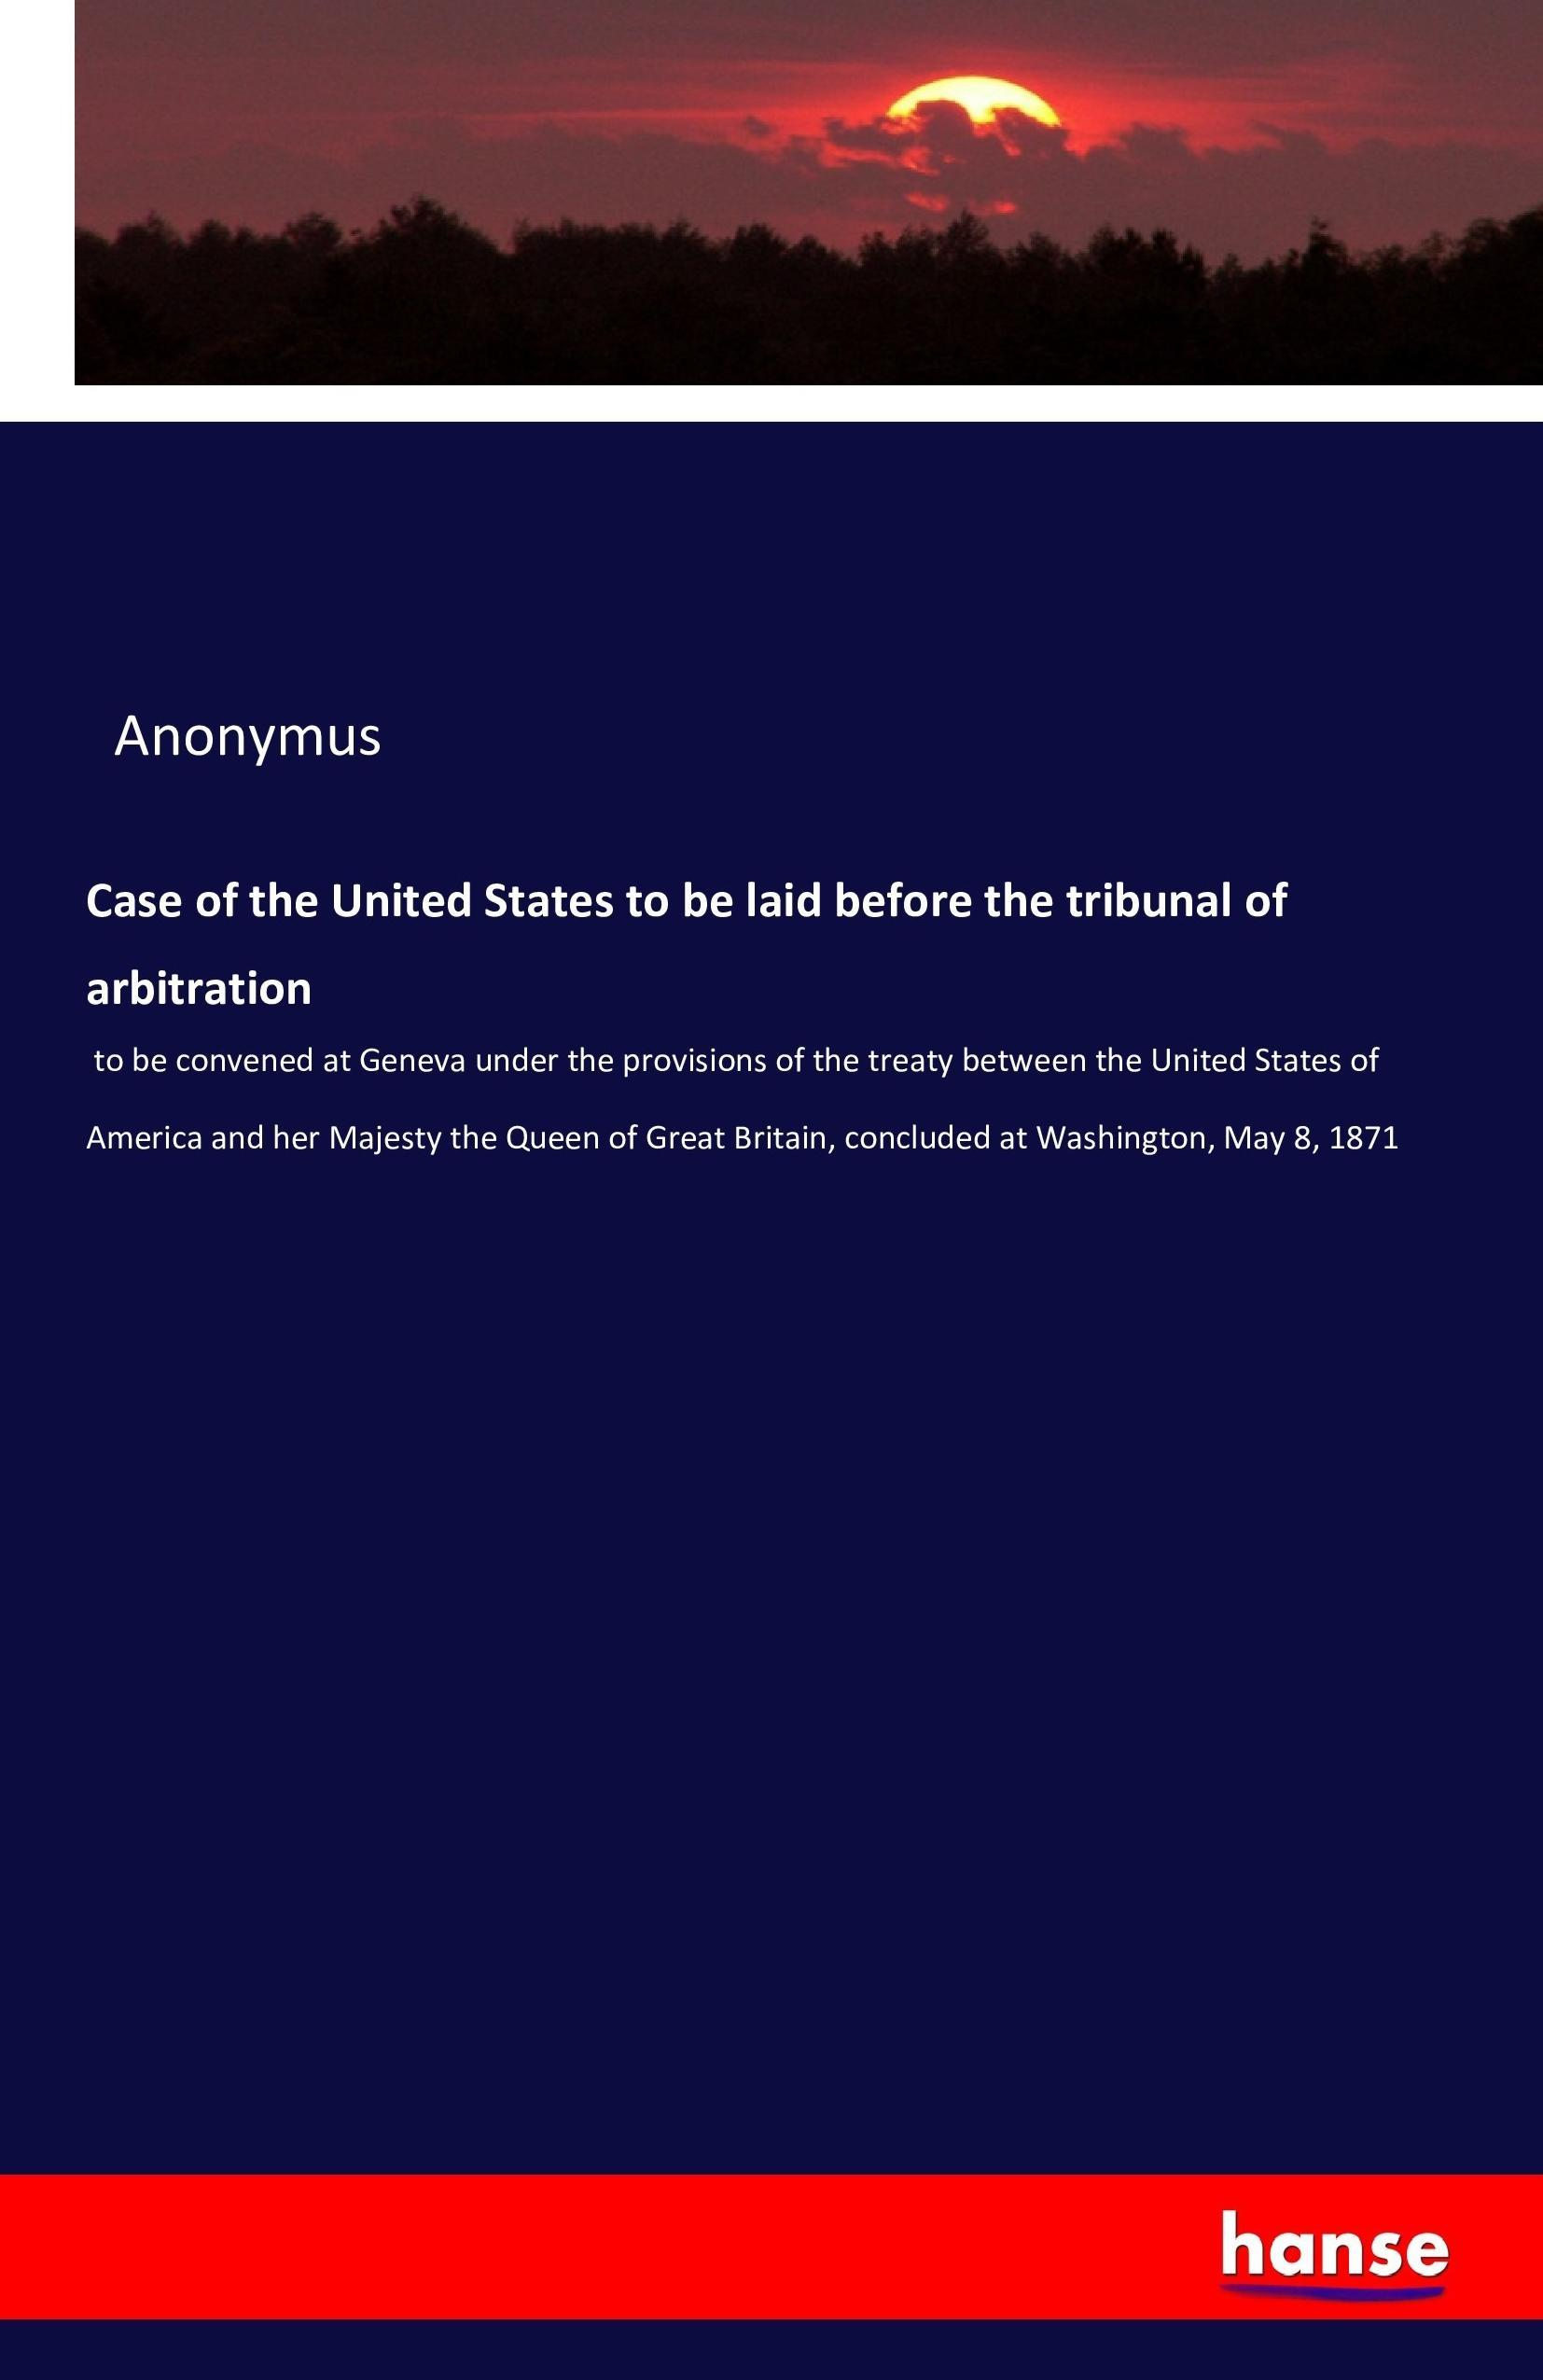 Anonymus / Case of the United States to be laid before the tri ... 9783742809421